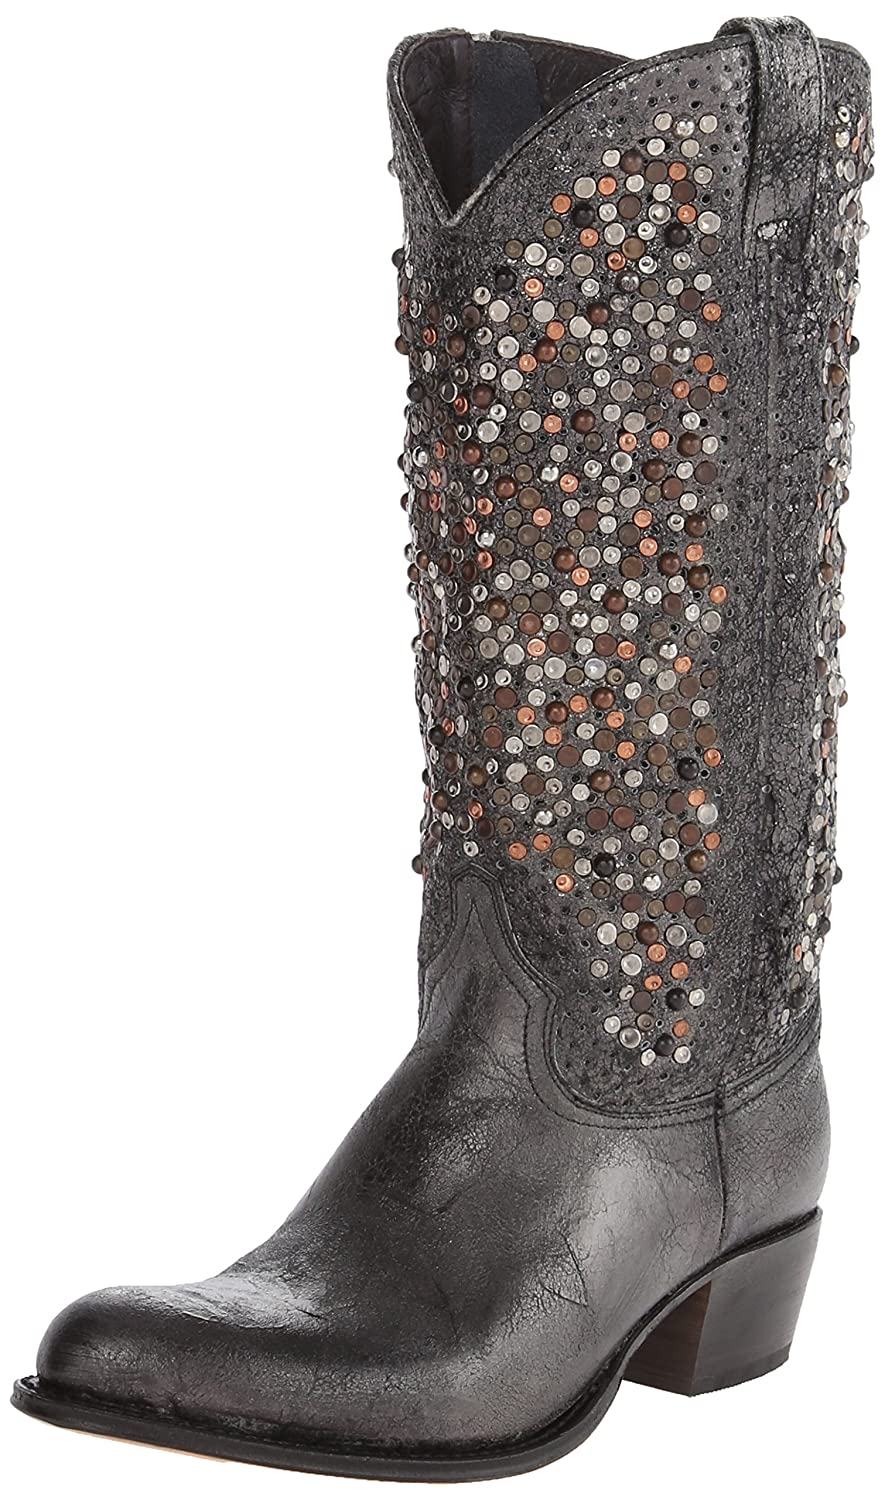 FRYE Women's Deborah Studded Tall Western Boot B00IM5I1Y2 7 B(M) US|Anthracite-77860